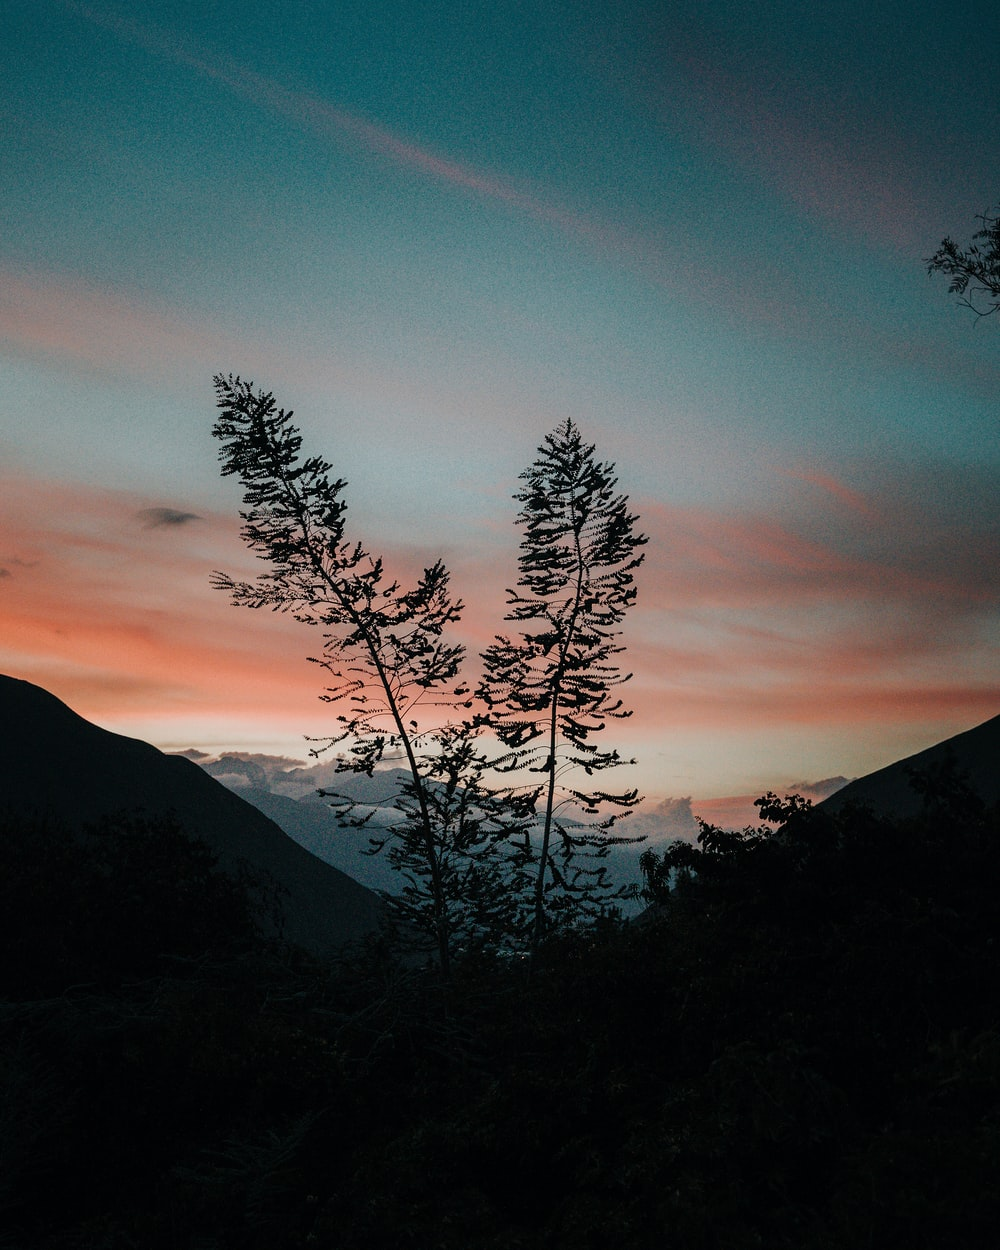 silhouette of trees on mountain during sunset